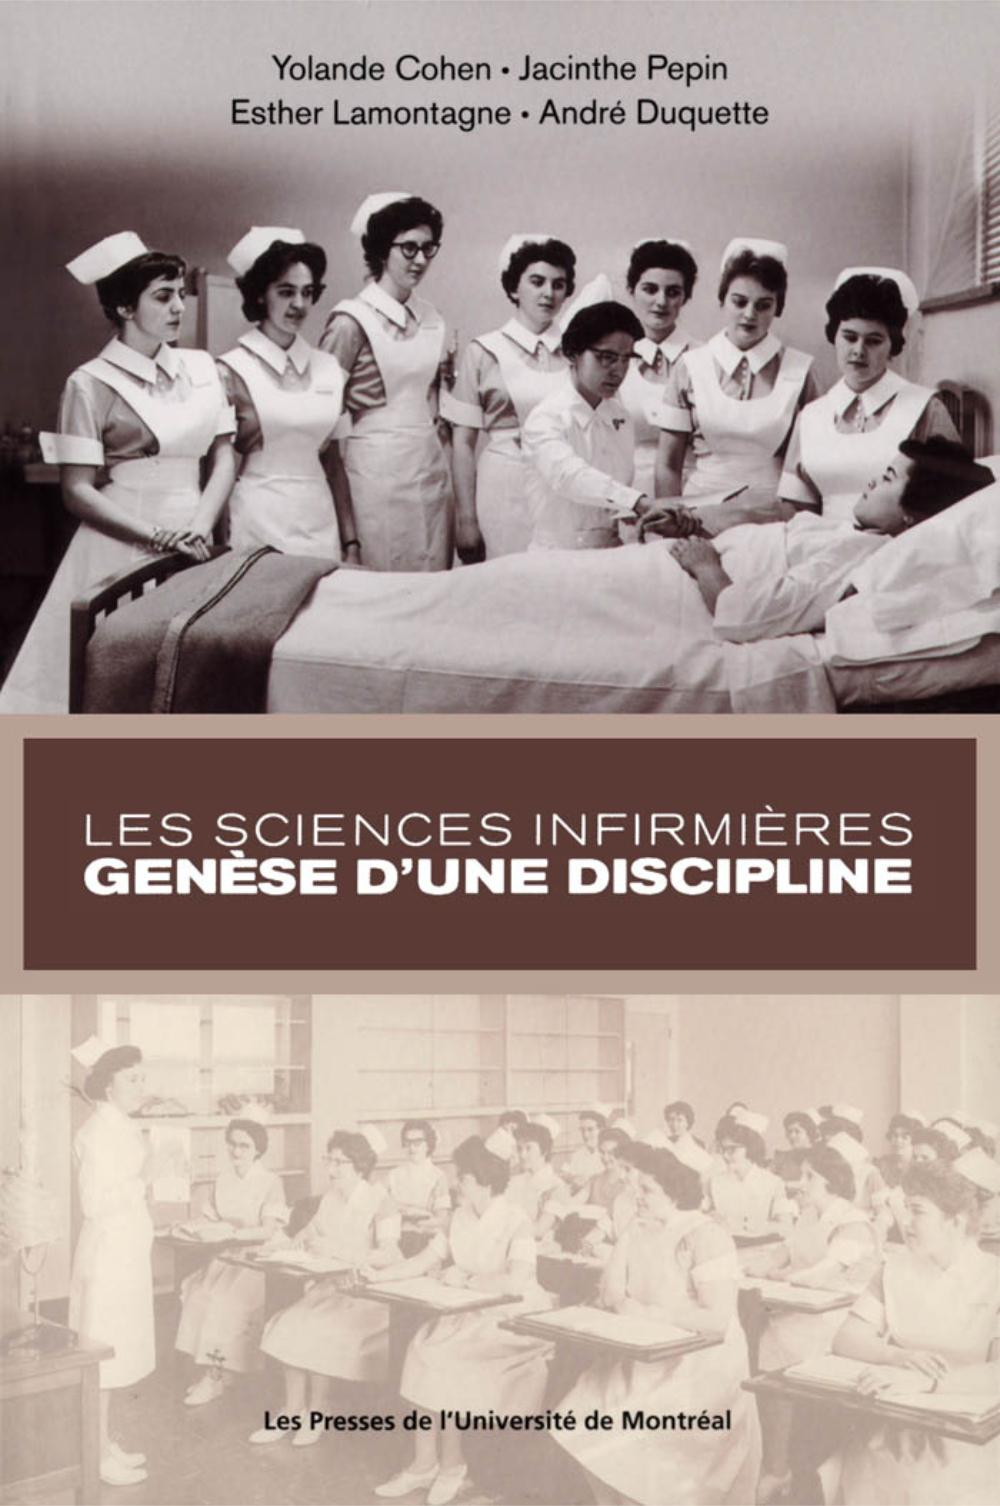 LES SCIENCES INFIRMIERES: GENESE D